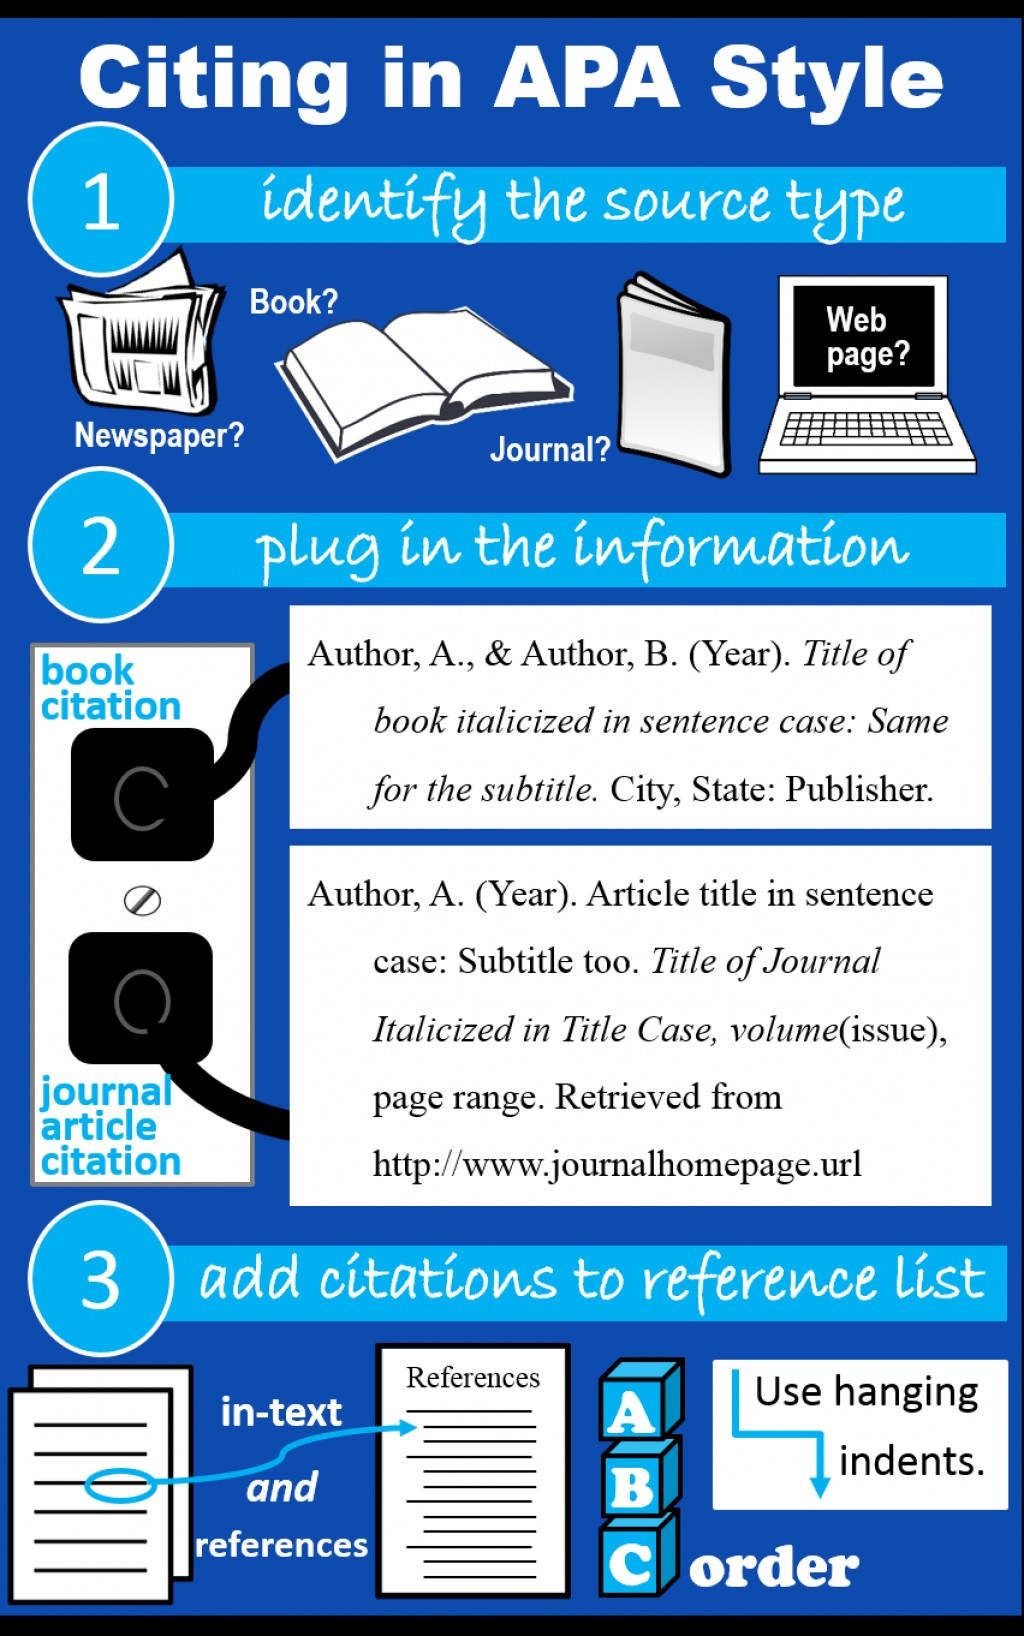 012 Citing Someone Elses Research Paper Apa Infographic Staggering Else's Large